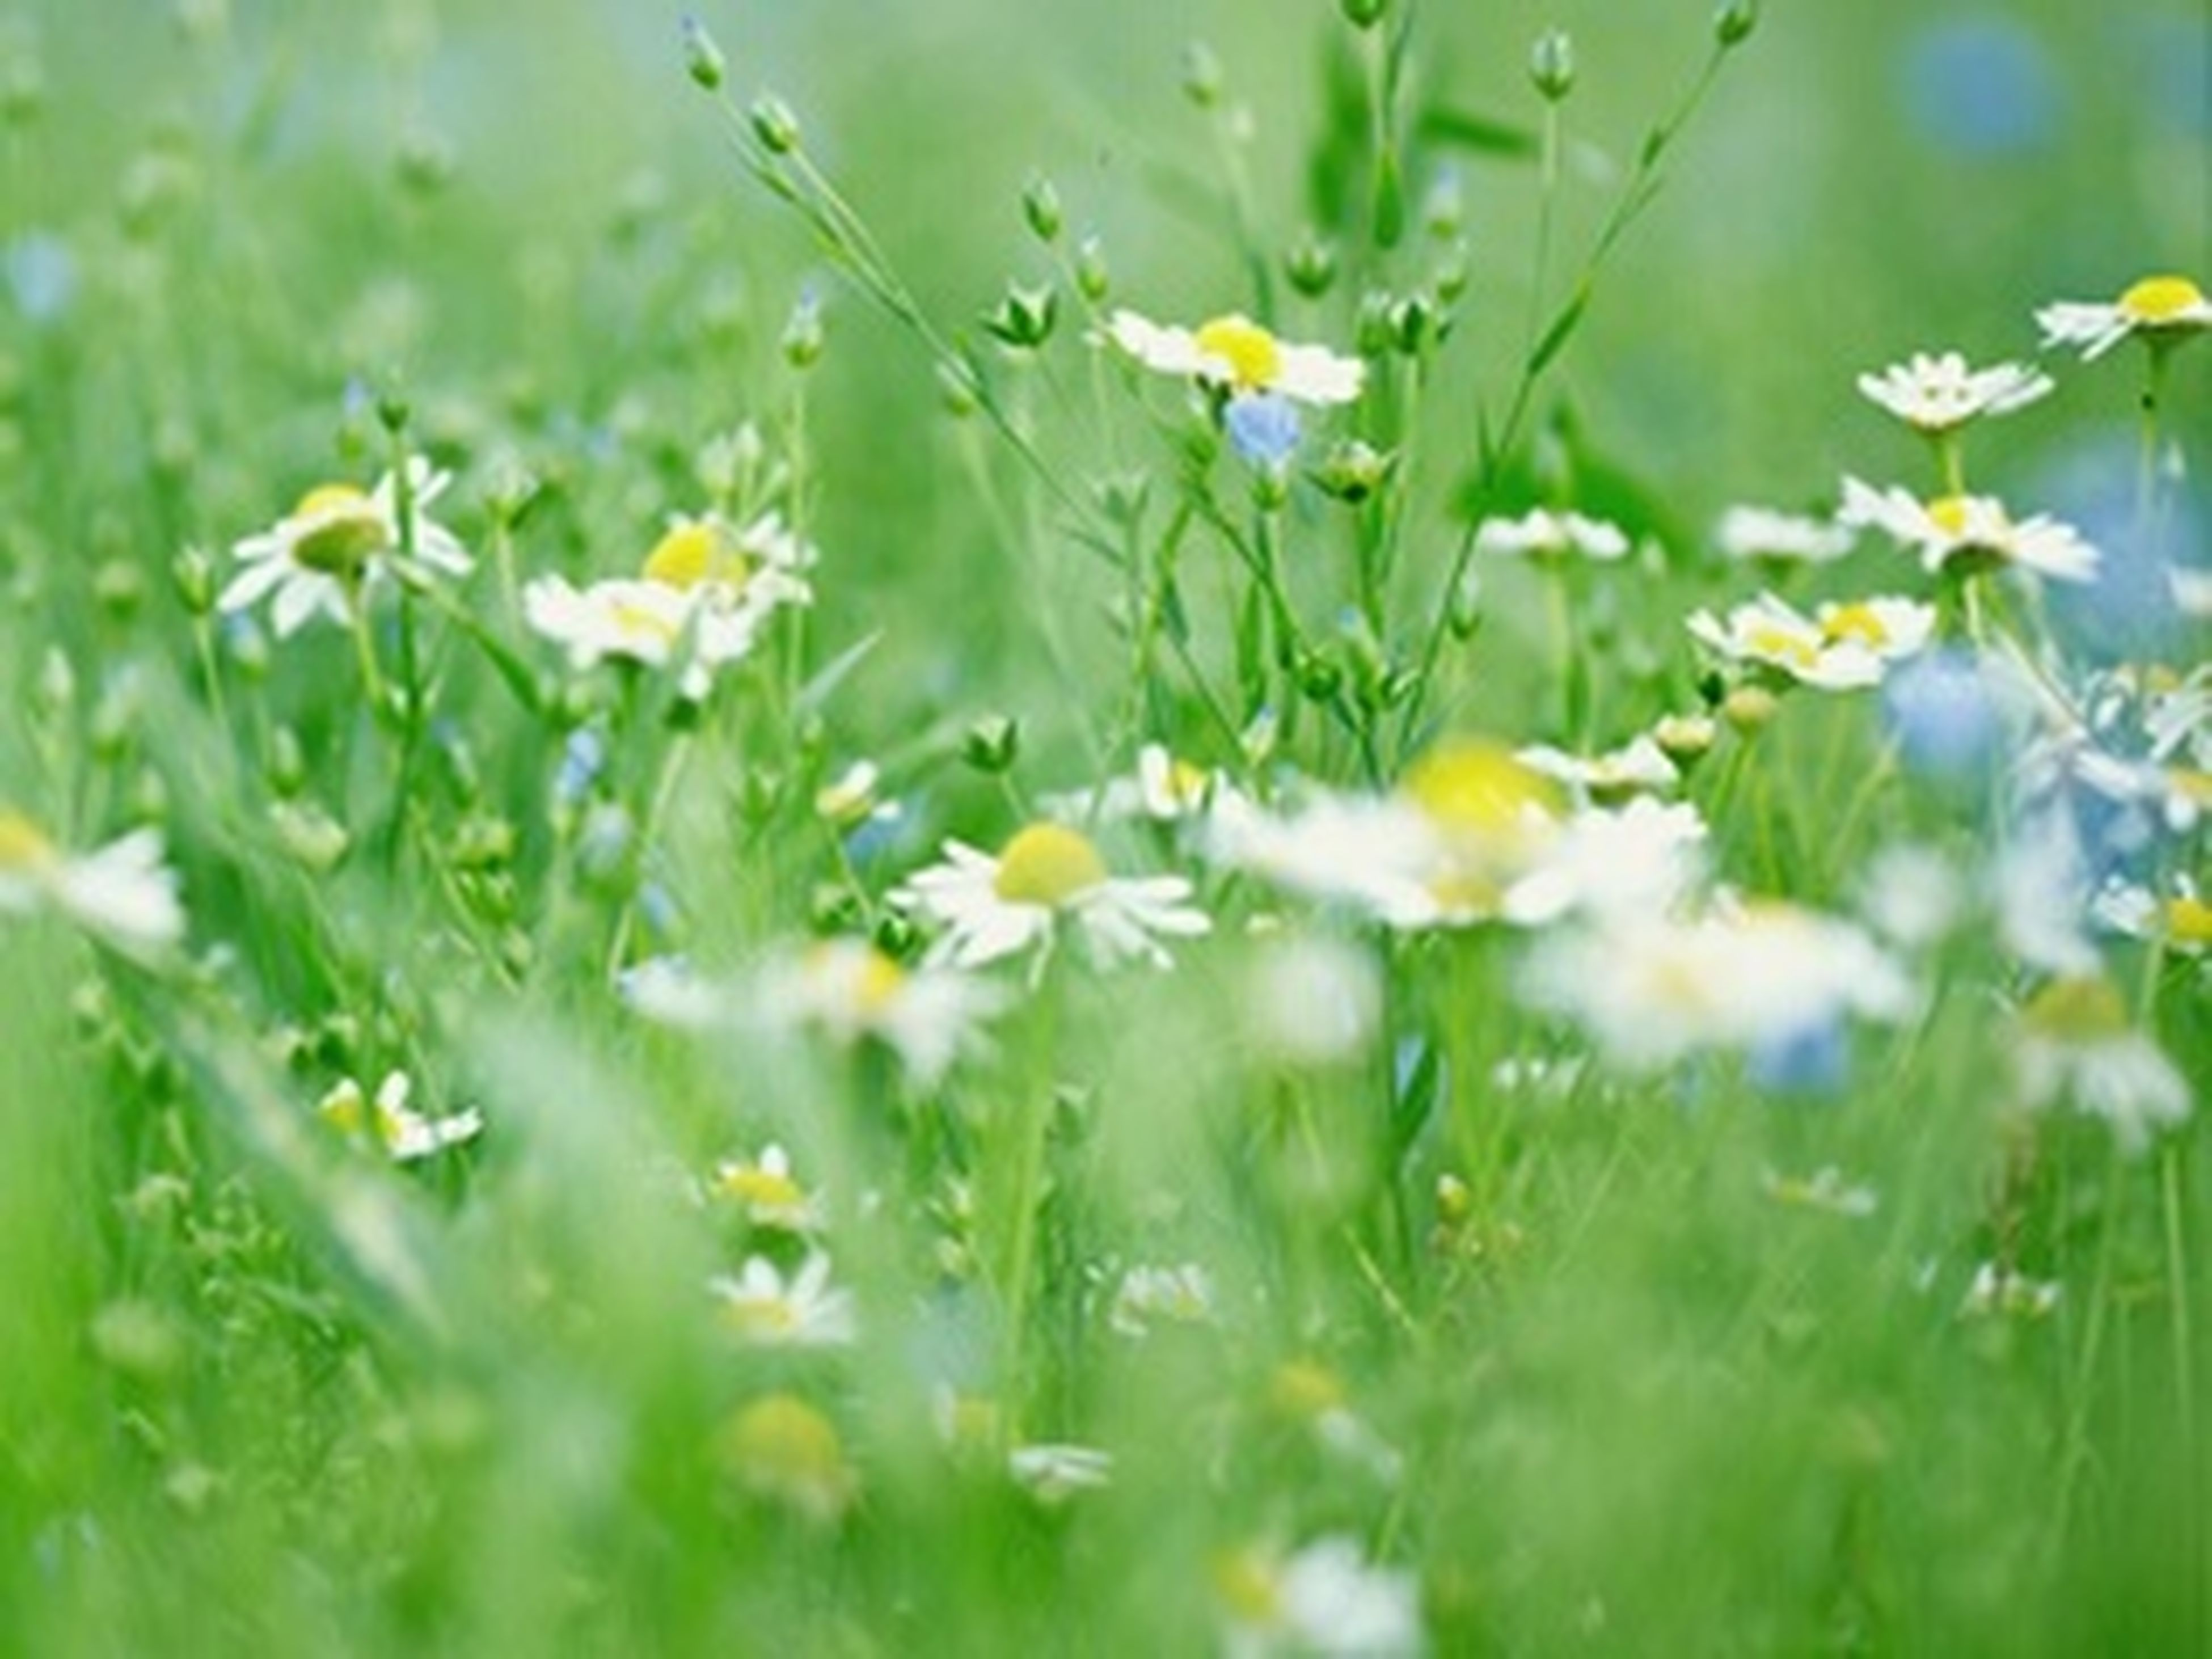 flower, growth, freshness, field, grass, beauty in nature, fragility, nature, green color, plant, selective focus, blooming, focus on foreground, petal, close-up, day, grassy, outdoors, white color, tranquility